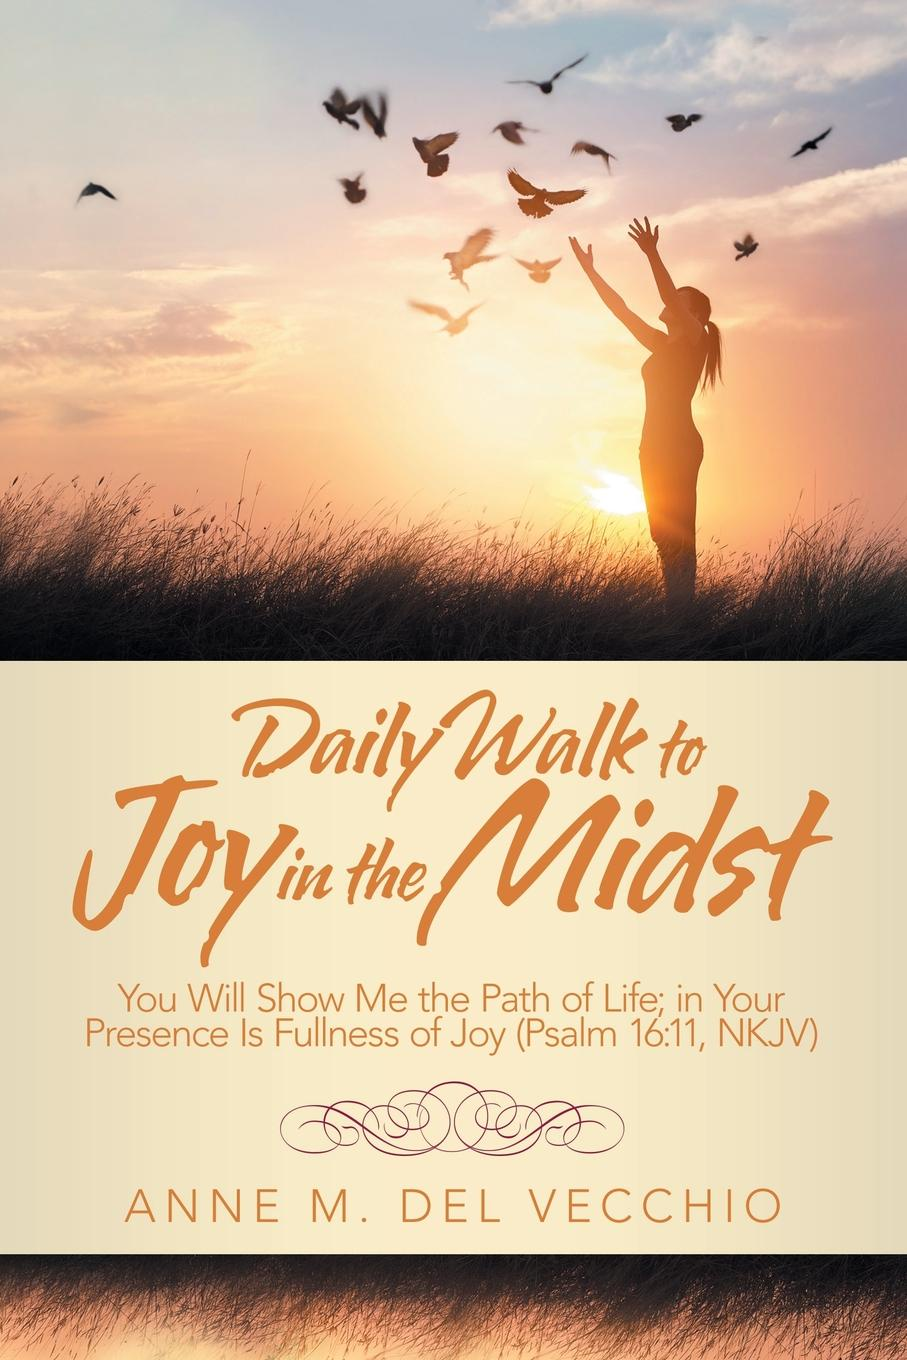 Anne M. Del Vecchio Daily Walk to Joy in the Midst. You Will Show Me the Path of Life; in Your Presence Is Fullness of Joy (Psalm 16:11, Nkjv) will irons the possibilities of oneness doorways to life s deeper meaning wonder and joy